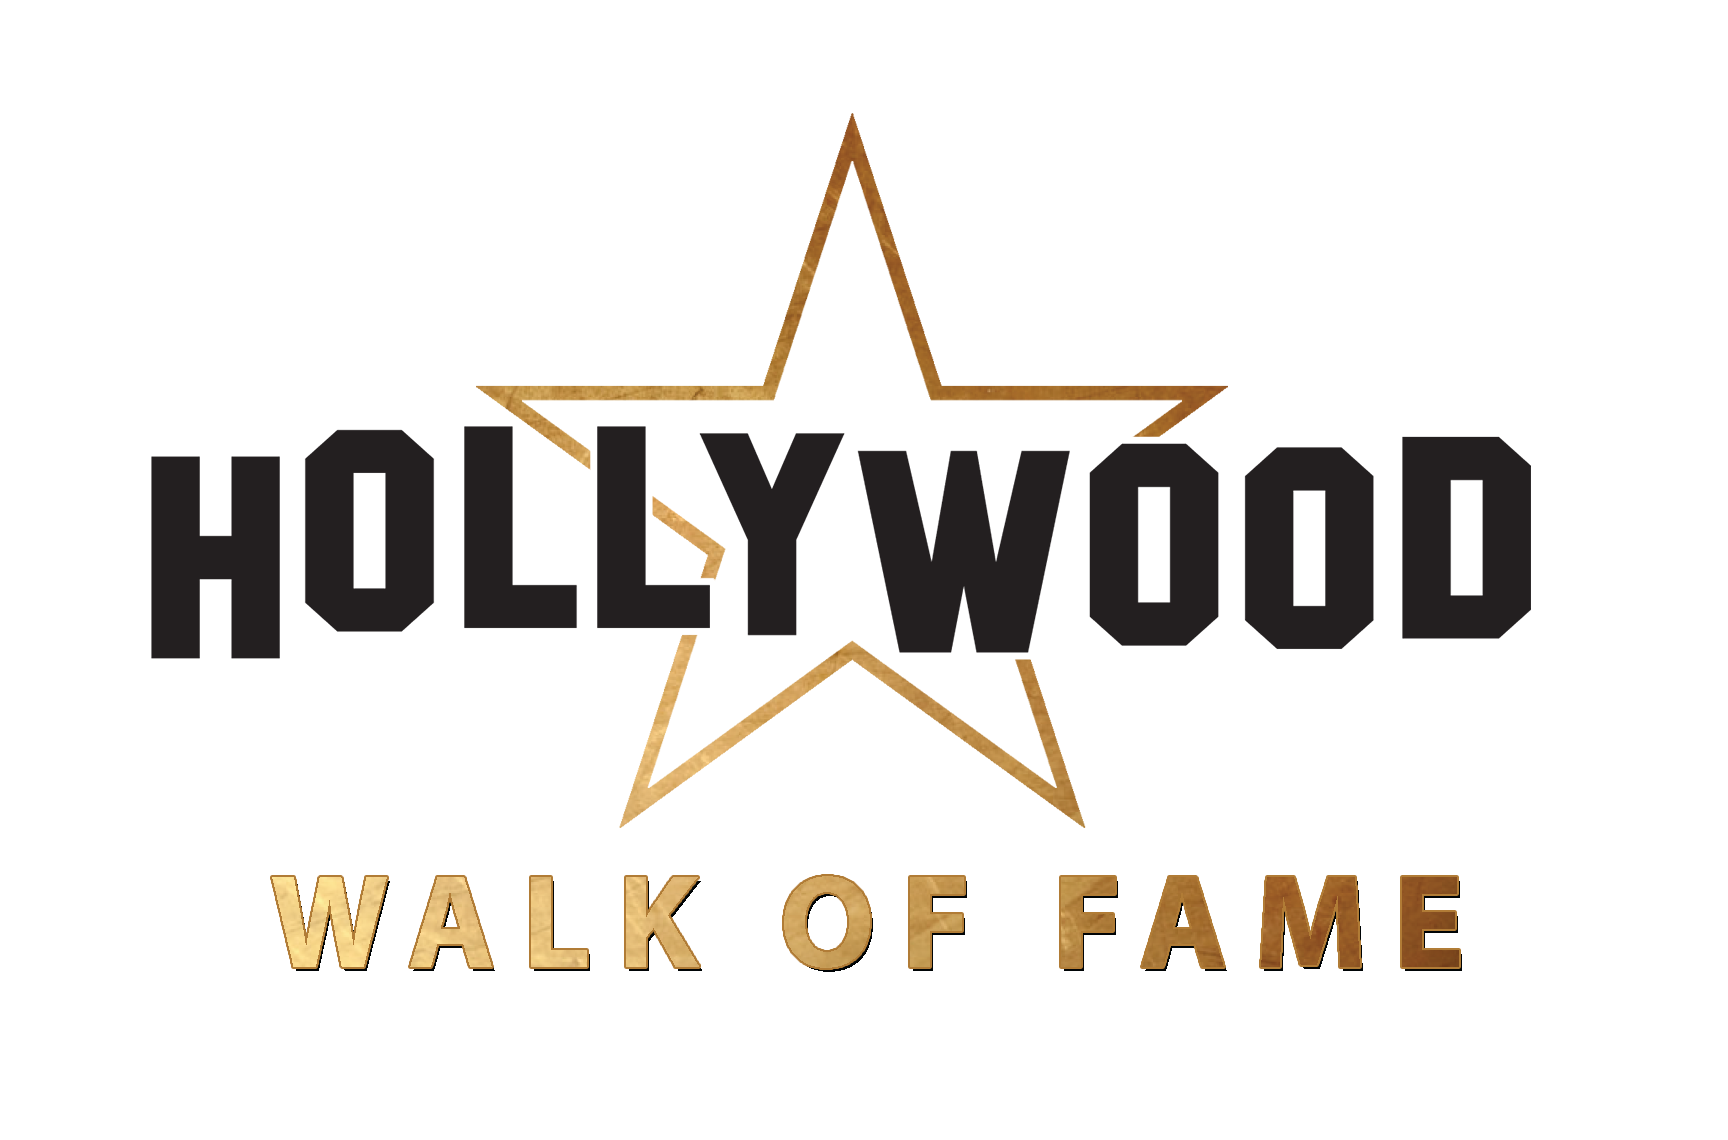 Free walk of fame star clipart image library Upcoming Star Ceremonies   Hollywood Walk of Fame image library